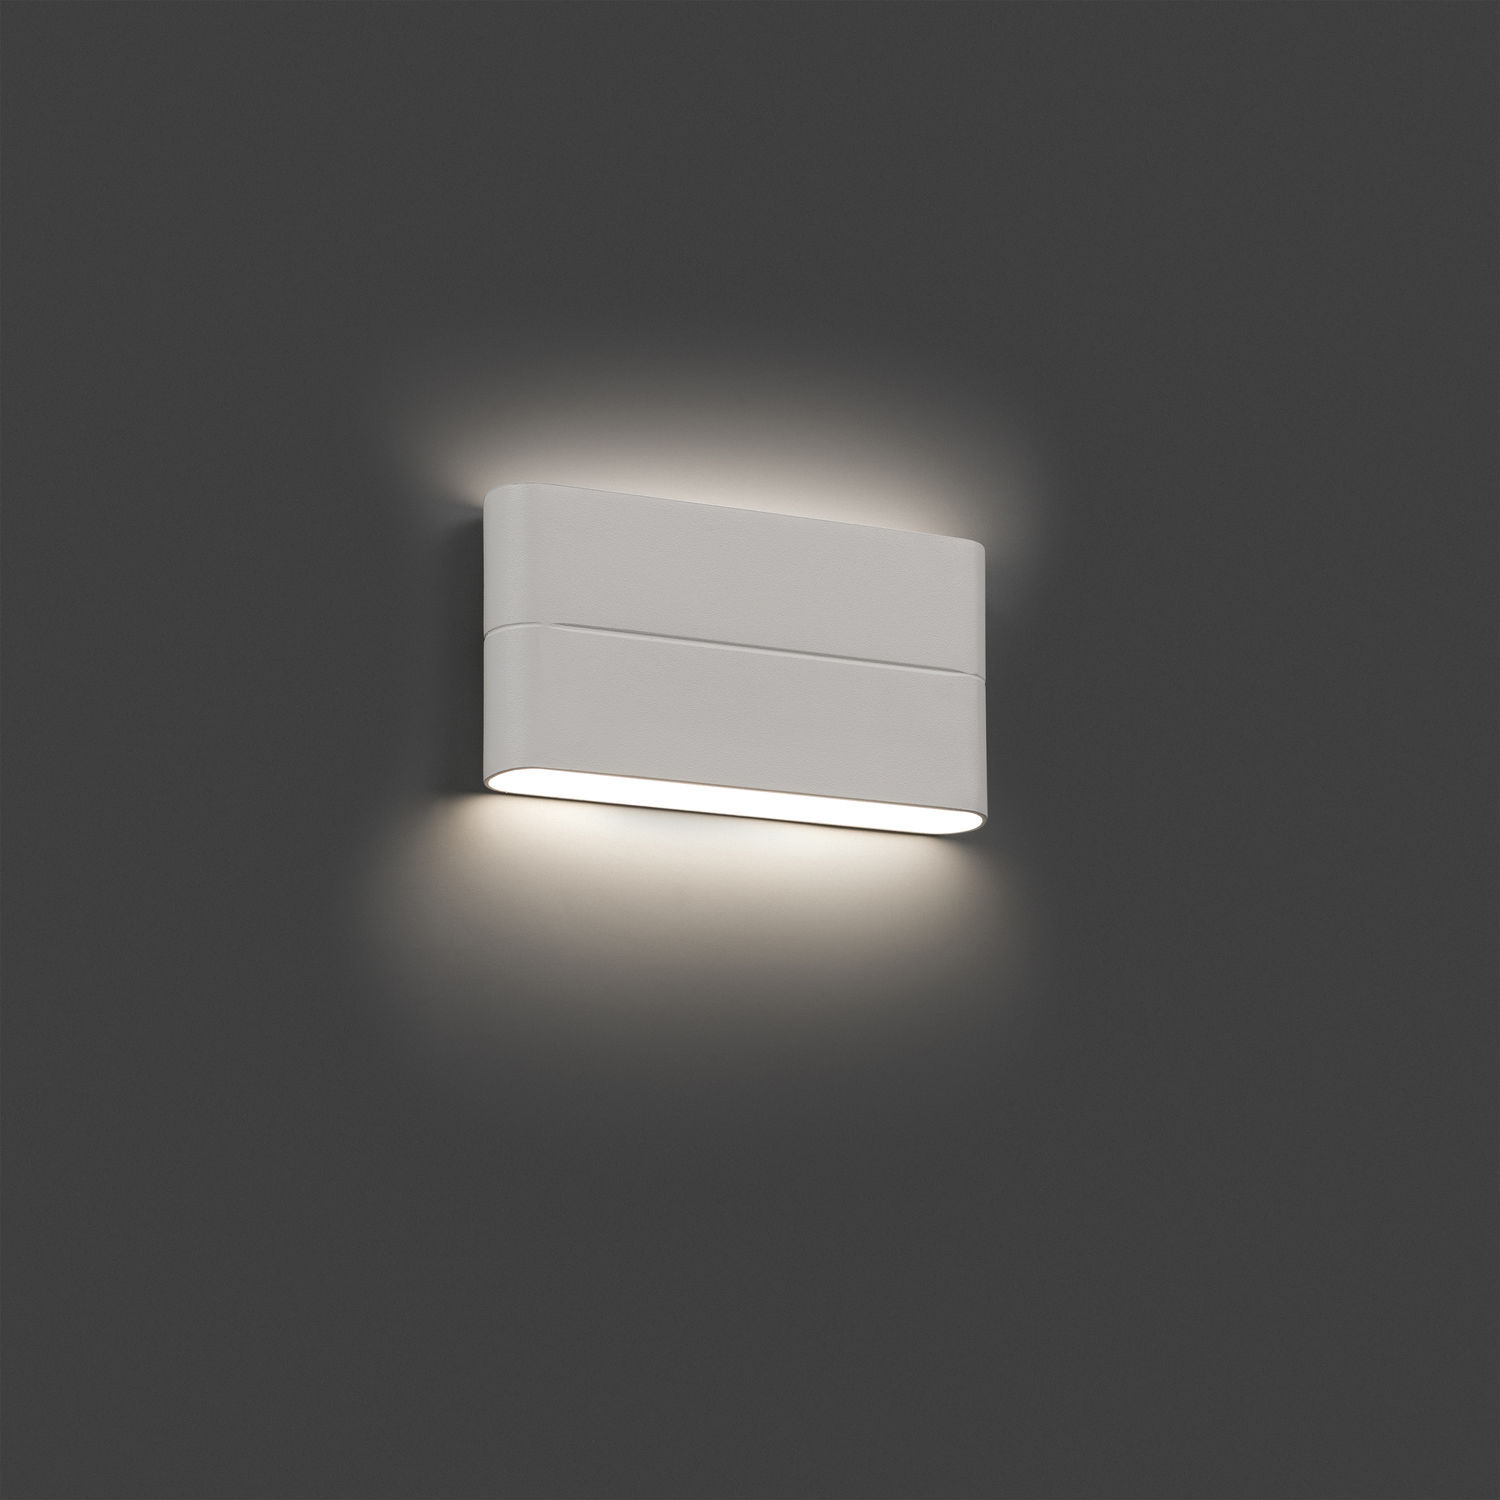 outdoor wall light aday 2 led ip54 white l17 5cm h9cm